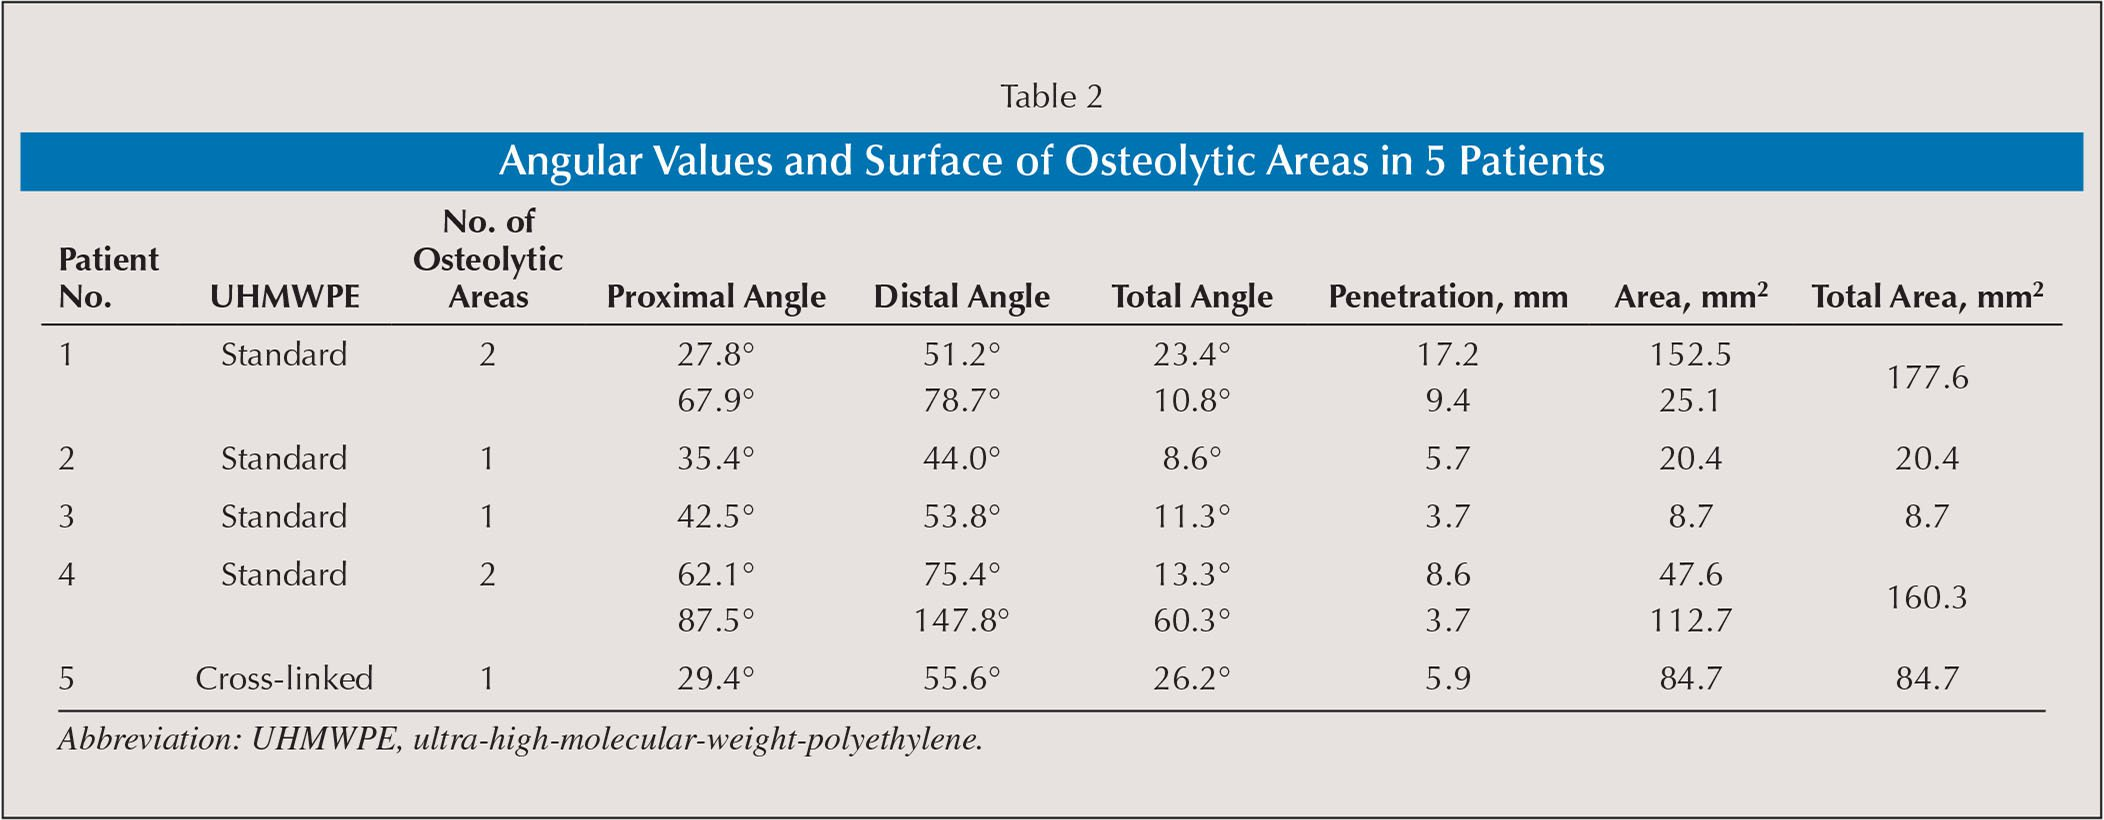 Angular Values and Surface of Osteolytic Areas in 5 Patients